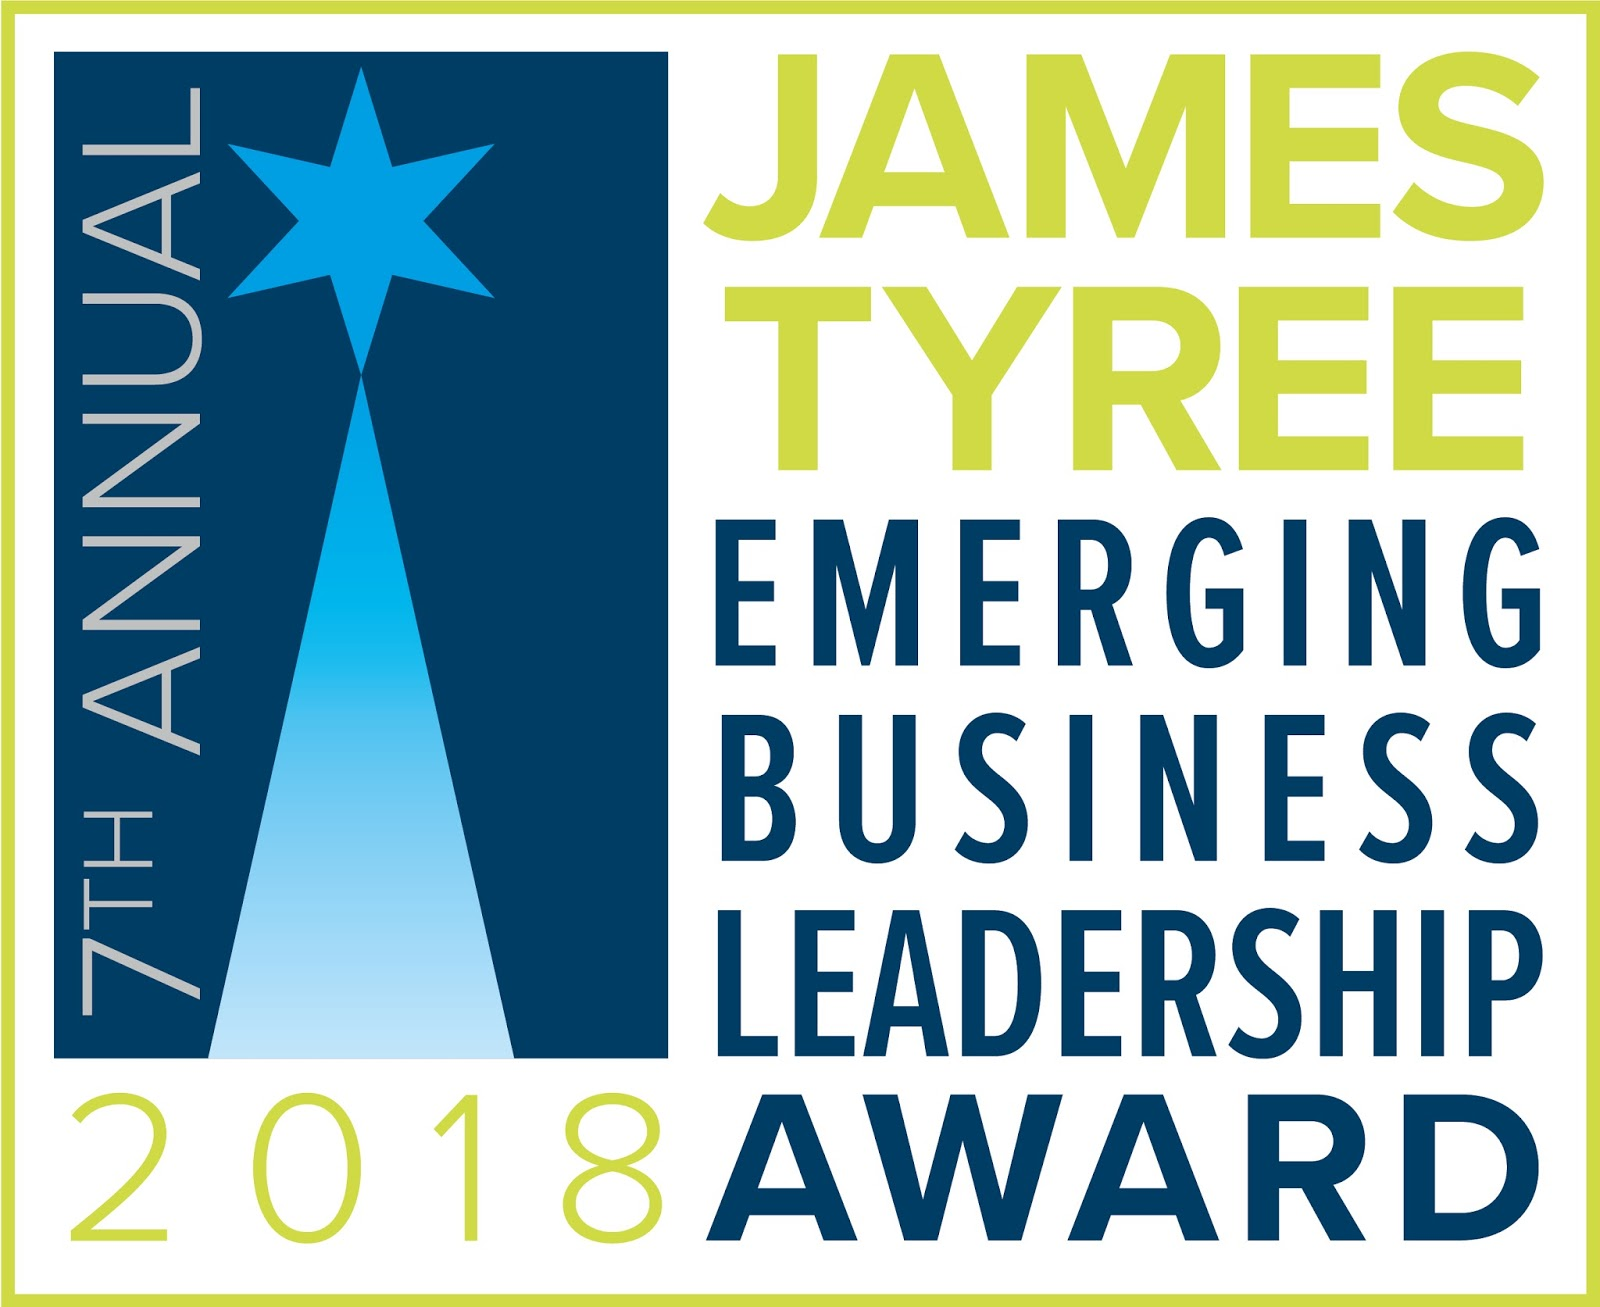 Illinois state representative barbara wheeler 2018 the chicagoland chamber of commerce presents the james tyree emerging business leadership award each year to an entrepreneur or small business in the malvernweather Gallery